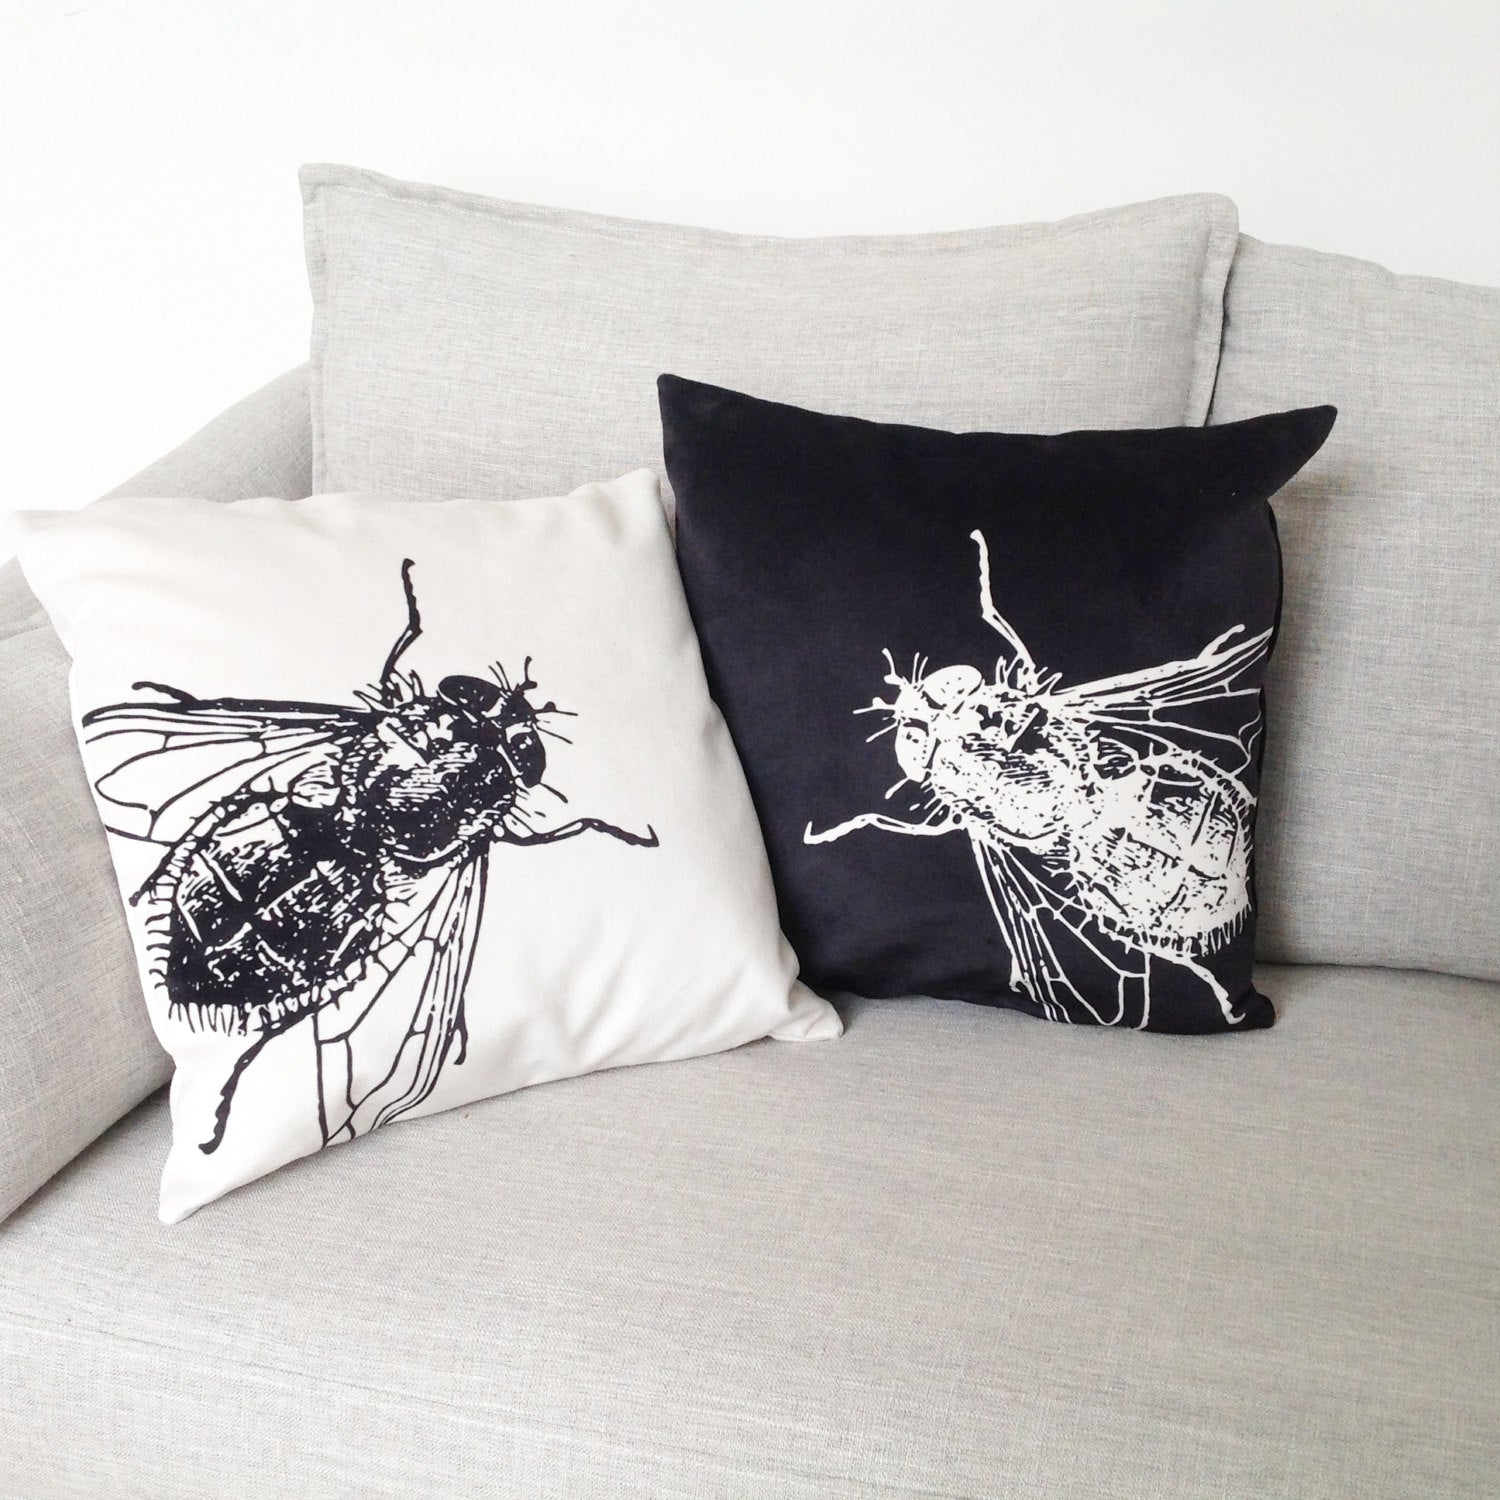 "black & white fly - 18"" velveteen pillow case - set of 2"